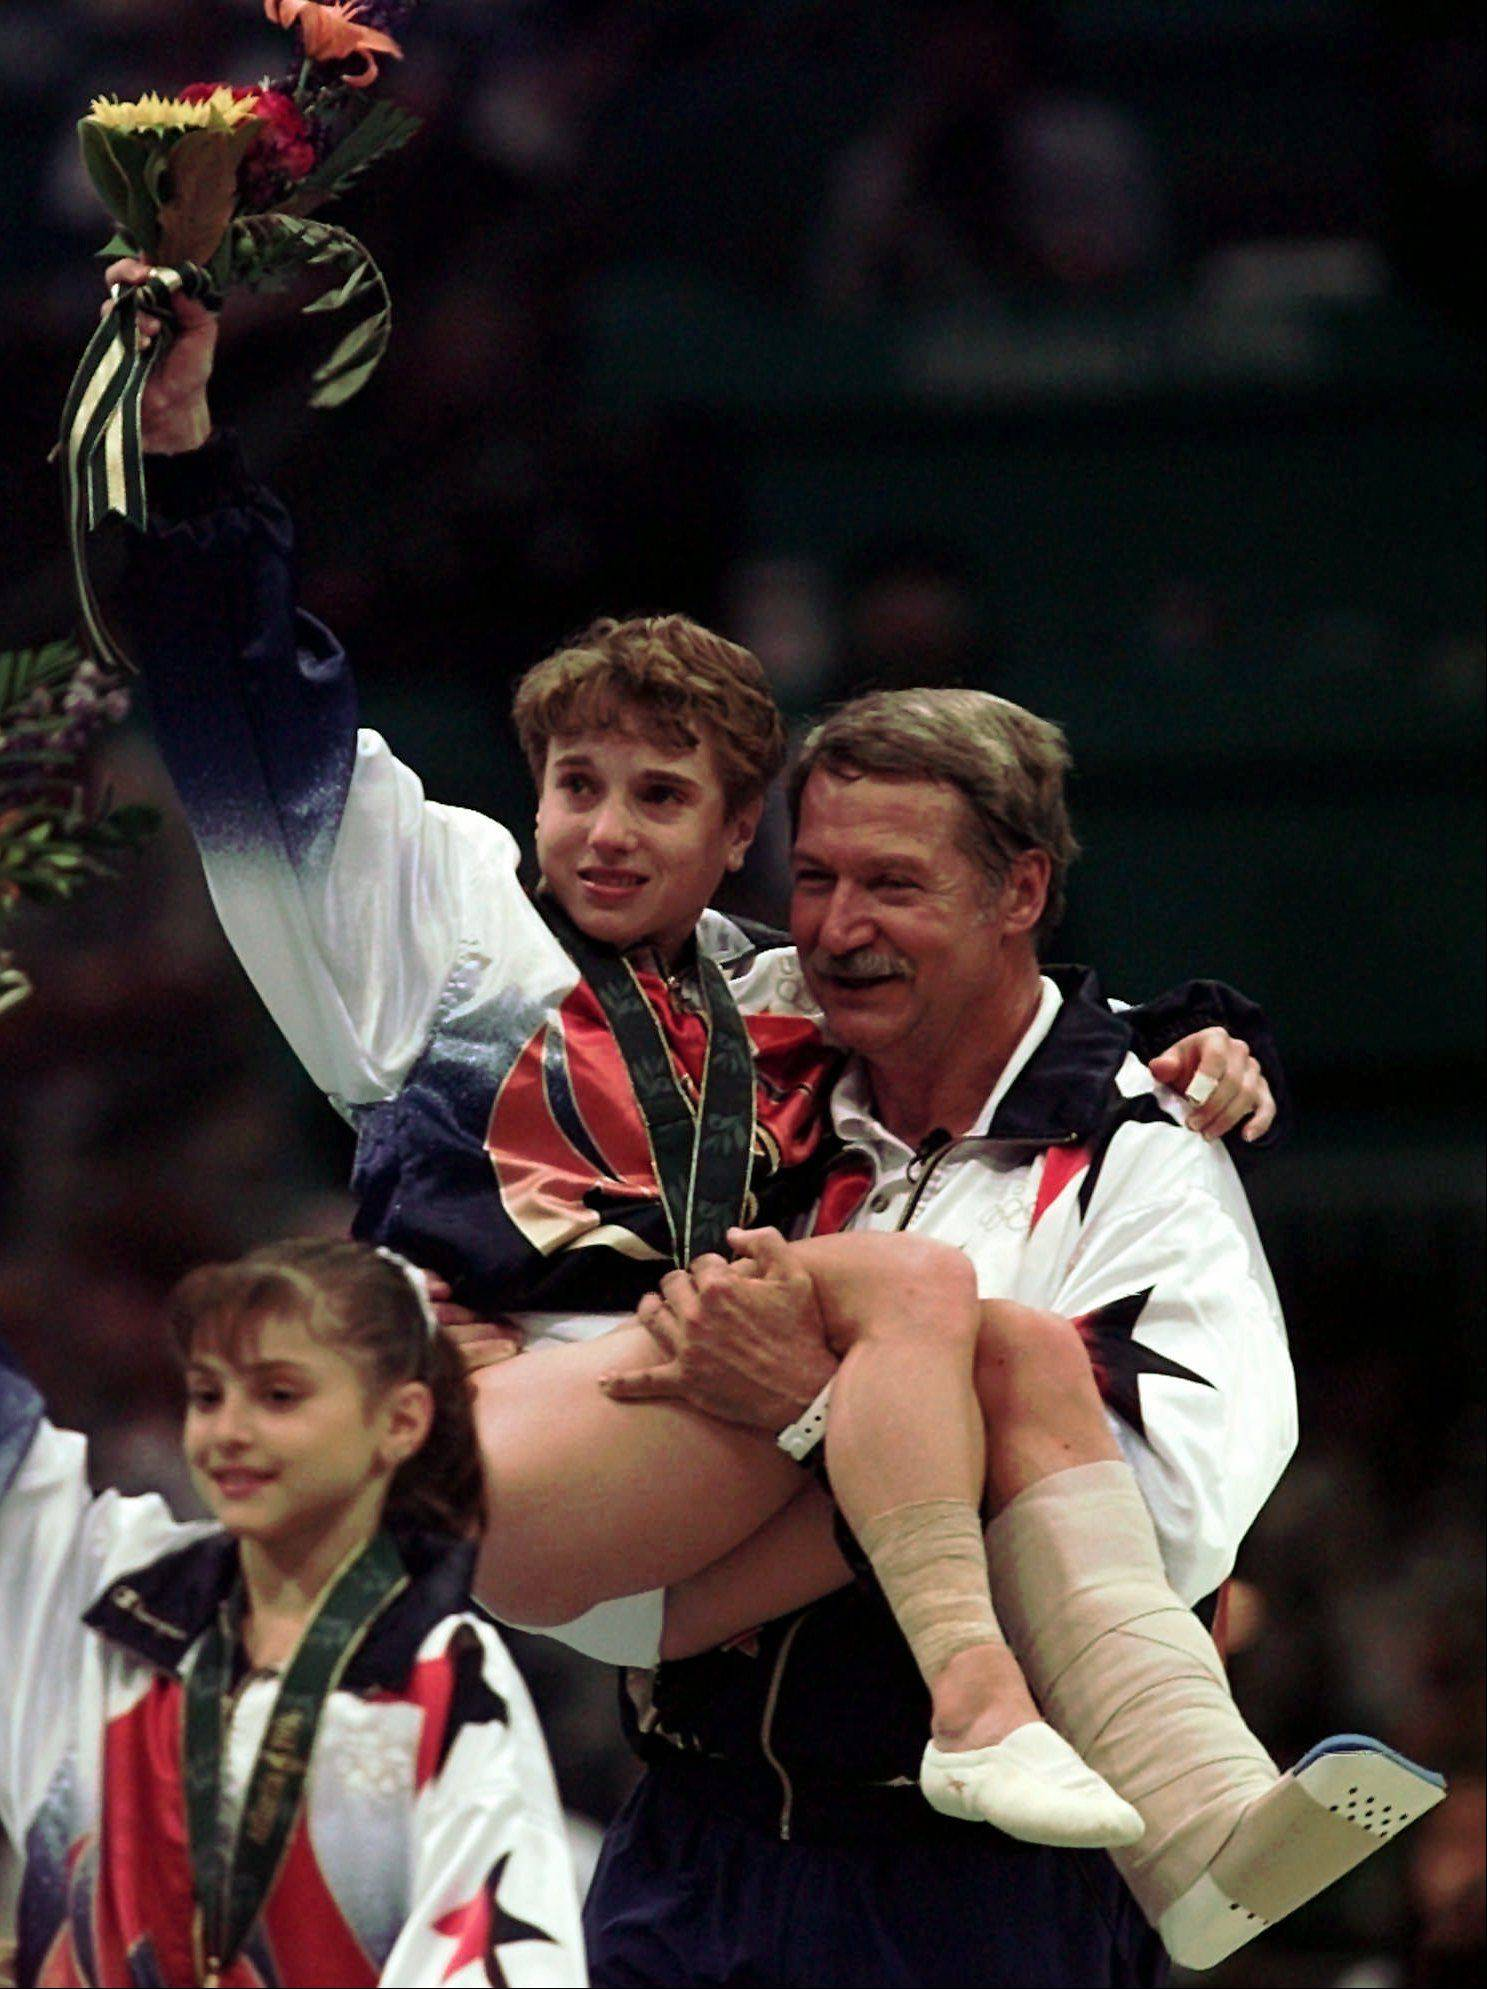 Coach Bela Karolyi carries injured gymnast Kerri Strug after the U.S. women's team received its gold medals in Atlanta in 1996.